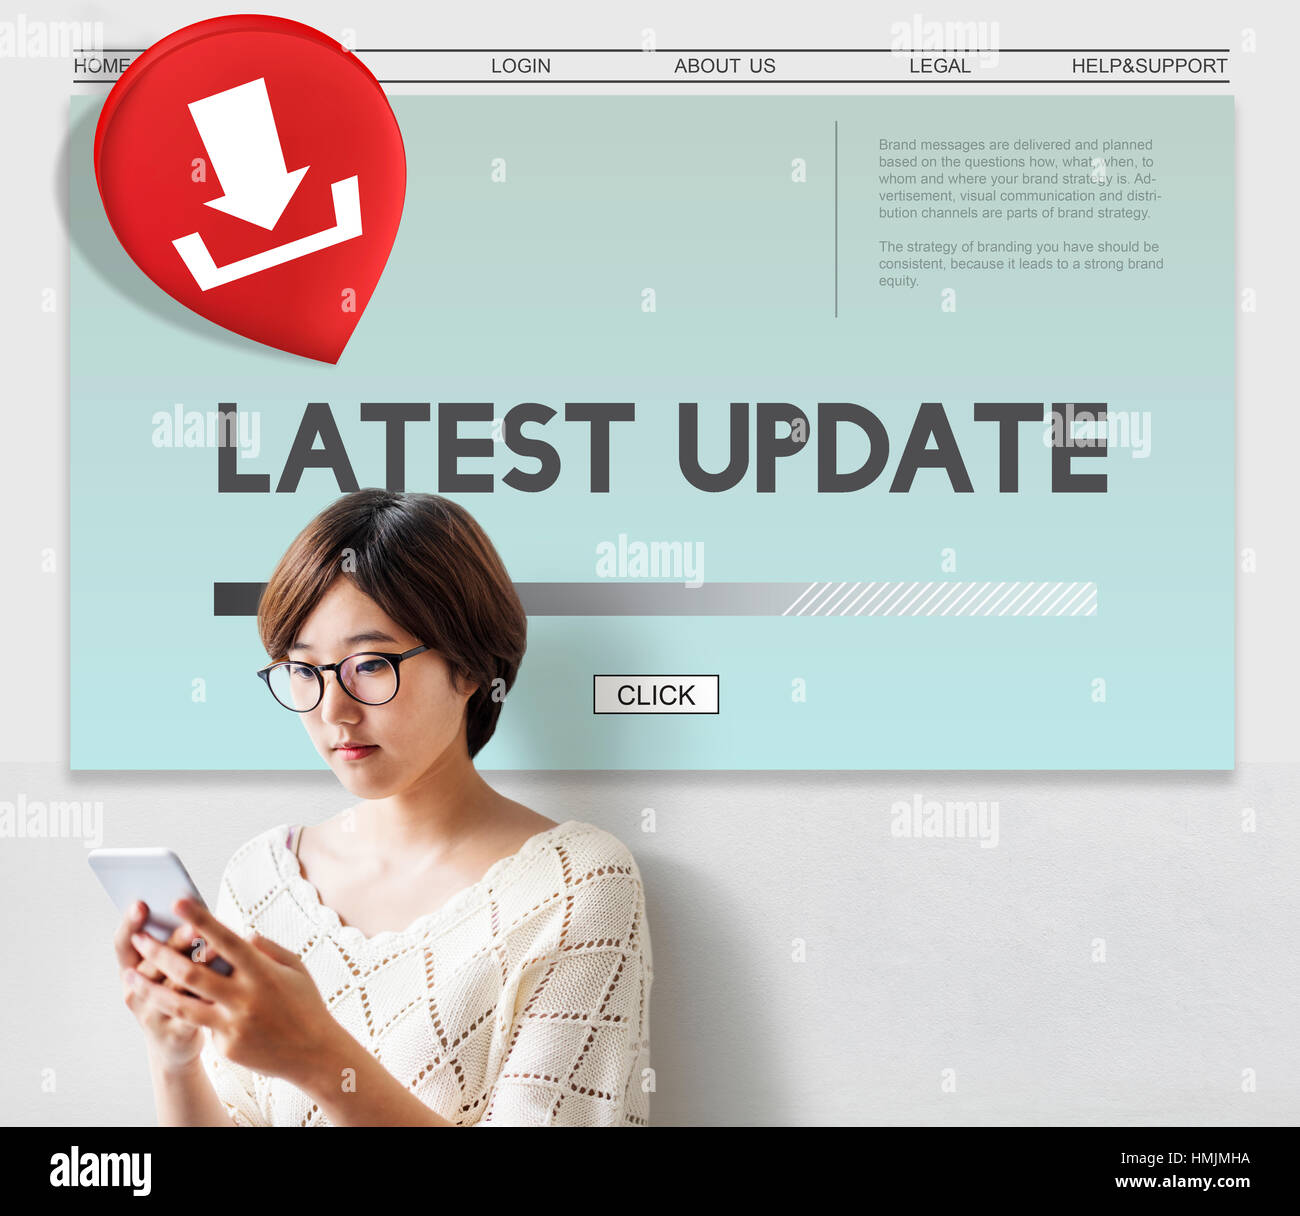 Latest Update Download Application Concept - Stock Image